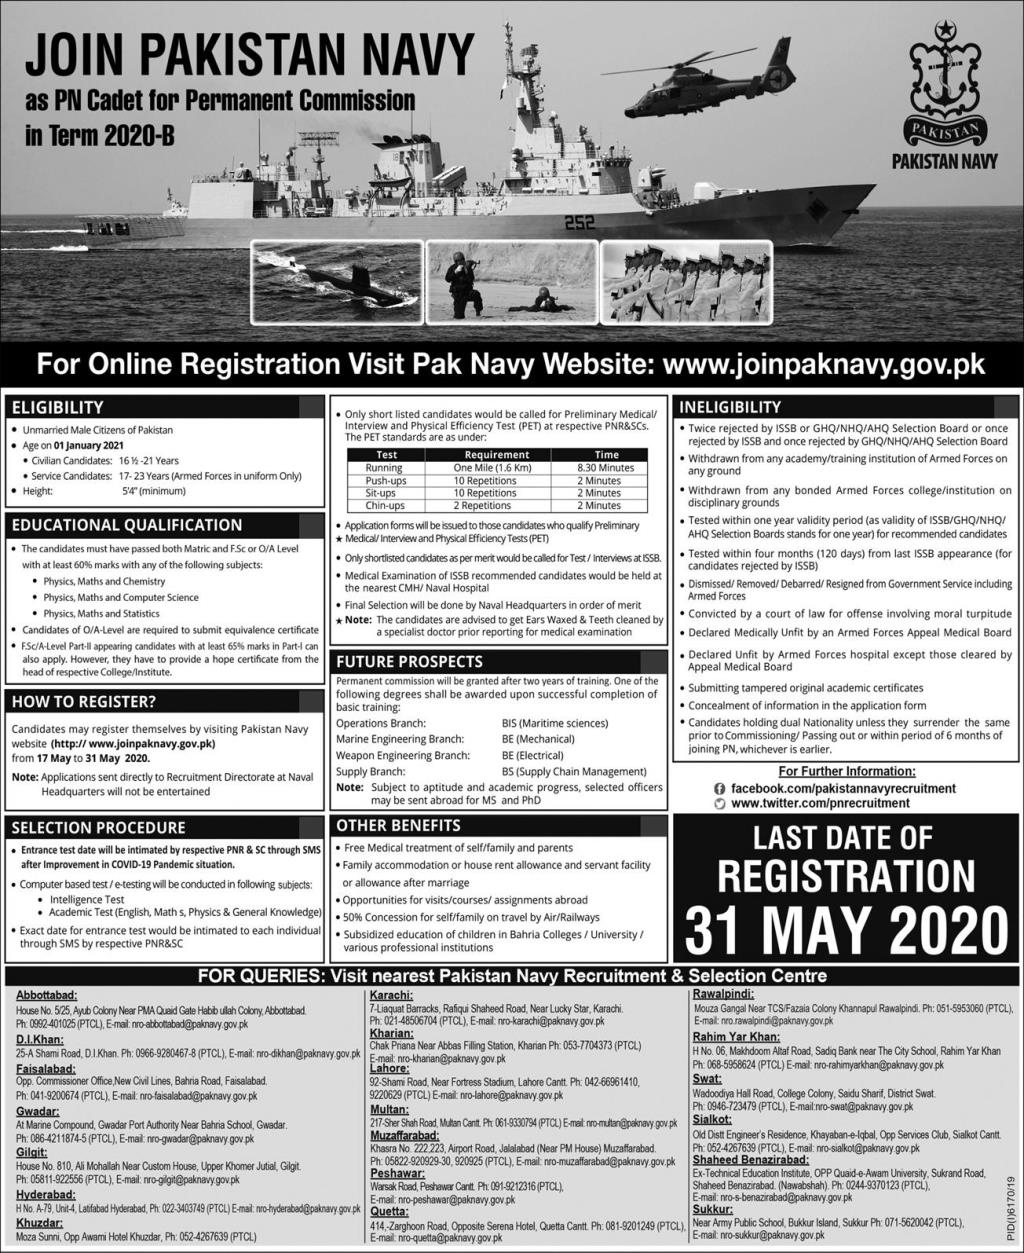 Join Pakistan Navy as PN Cadet for Permanent